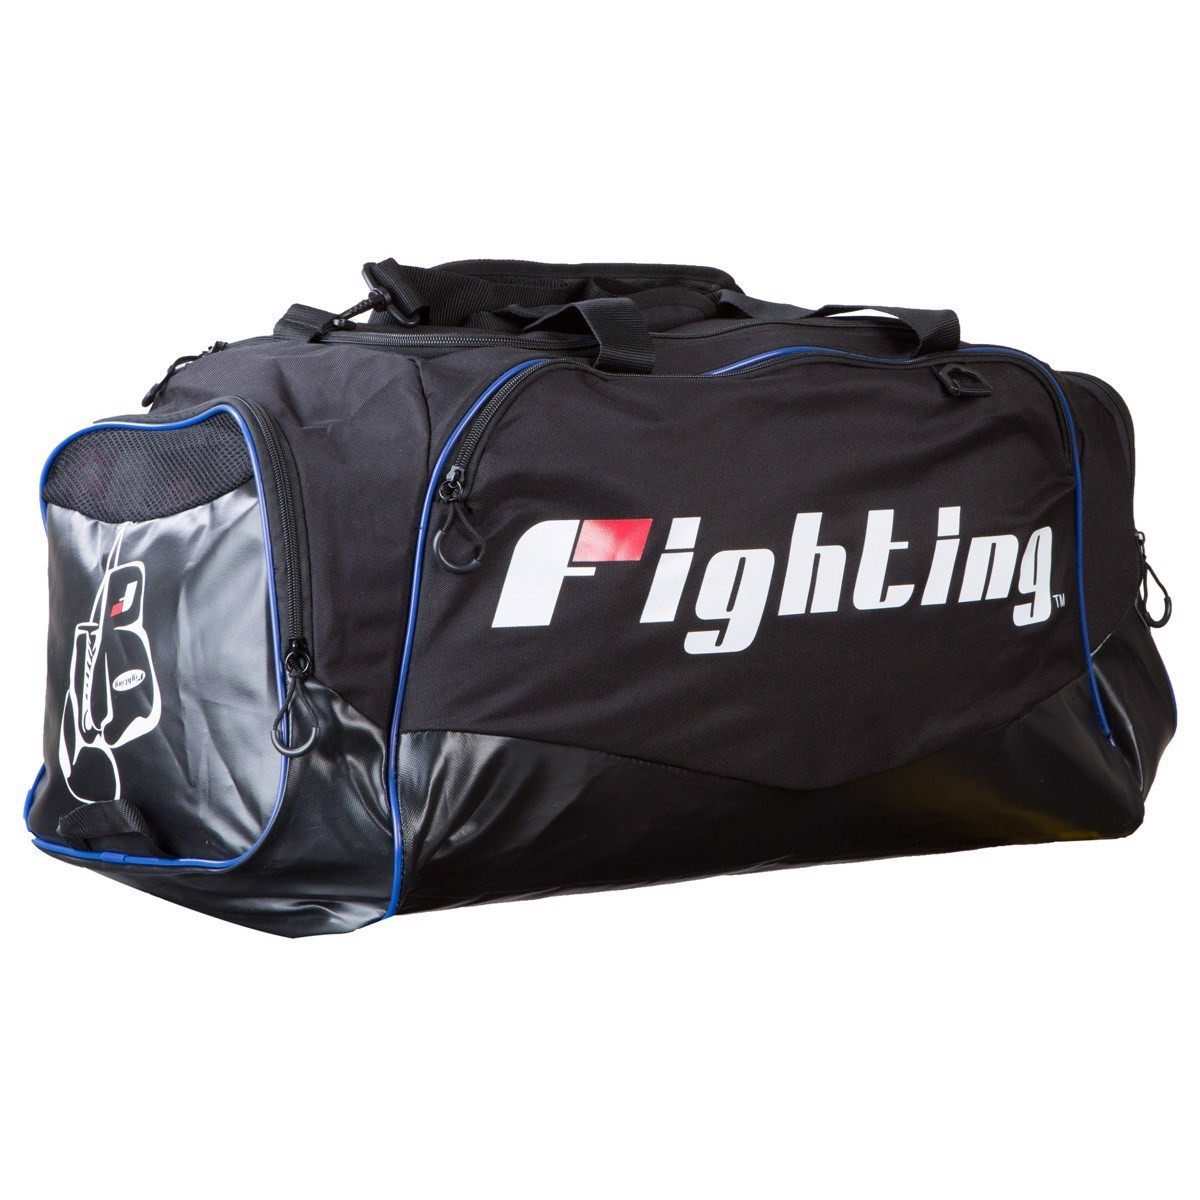 TÚI FIGHTING SPORTS TRI-TECH TENACIOUS EQUIPMENT BAG